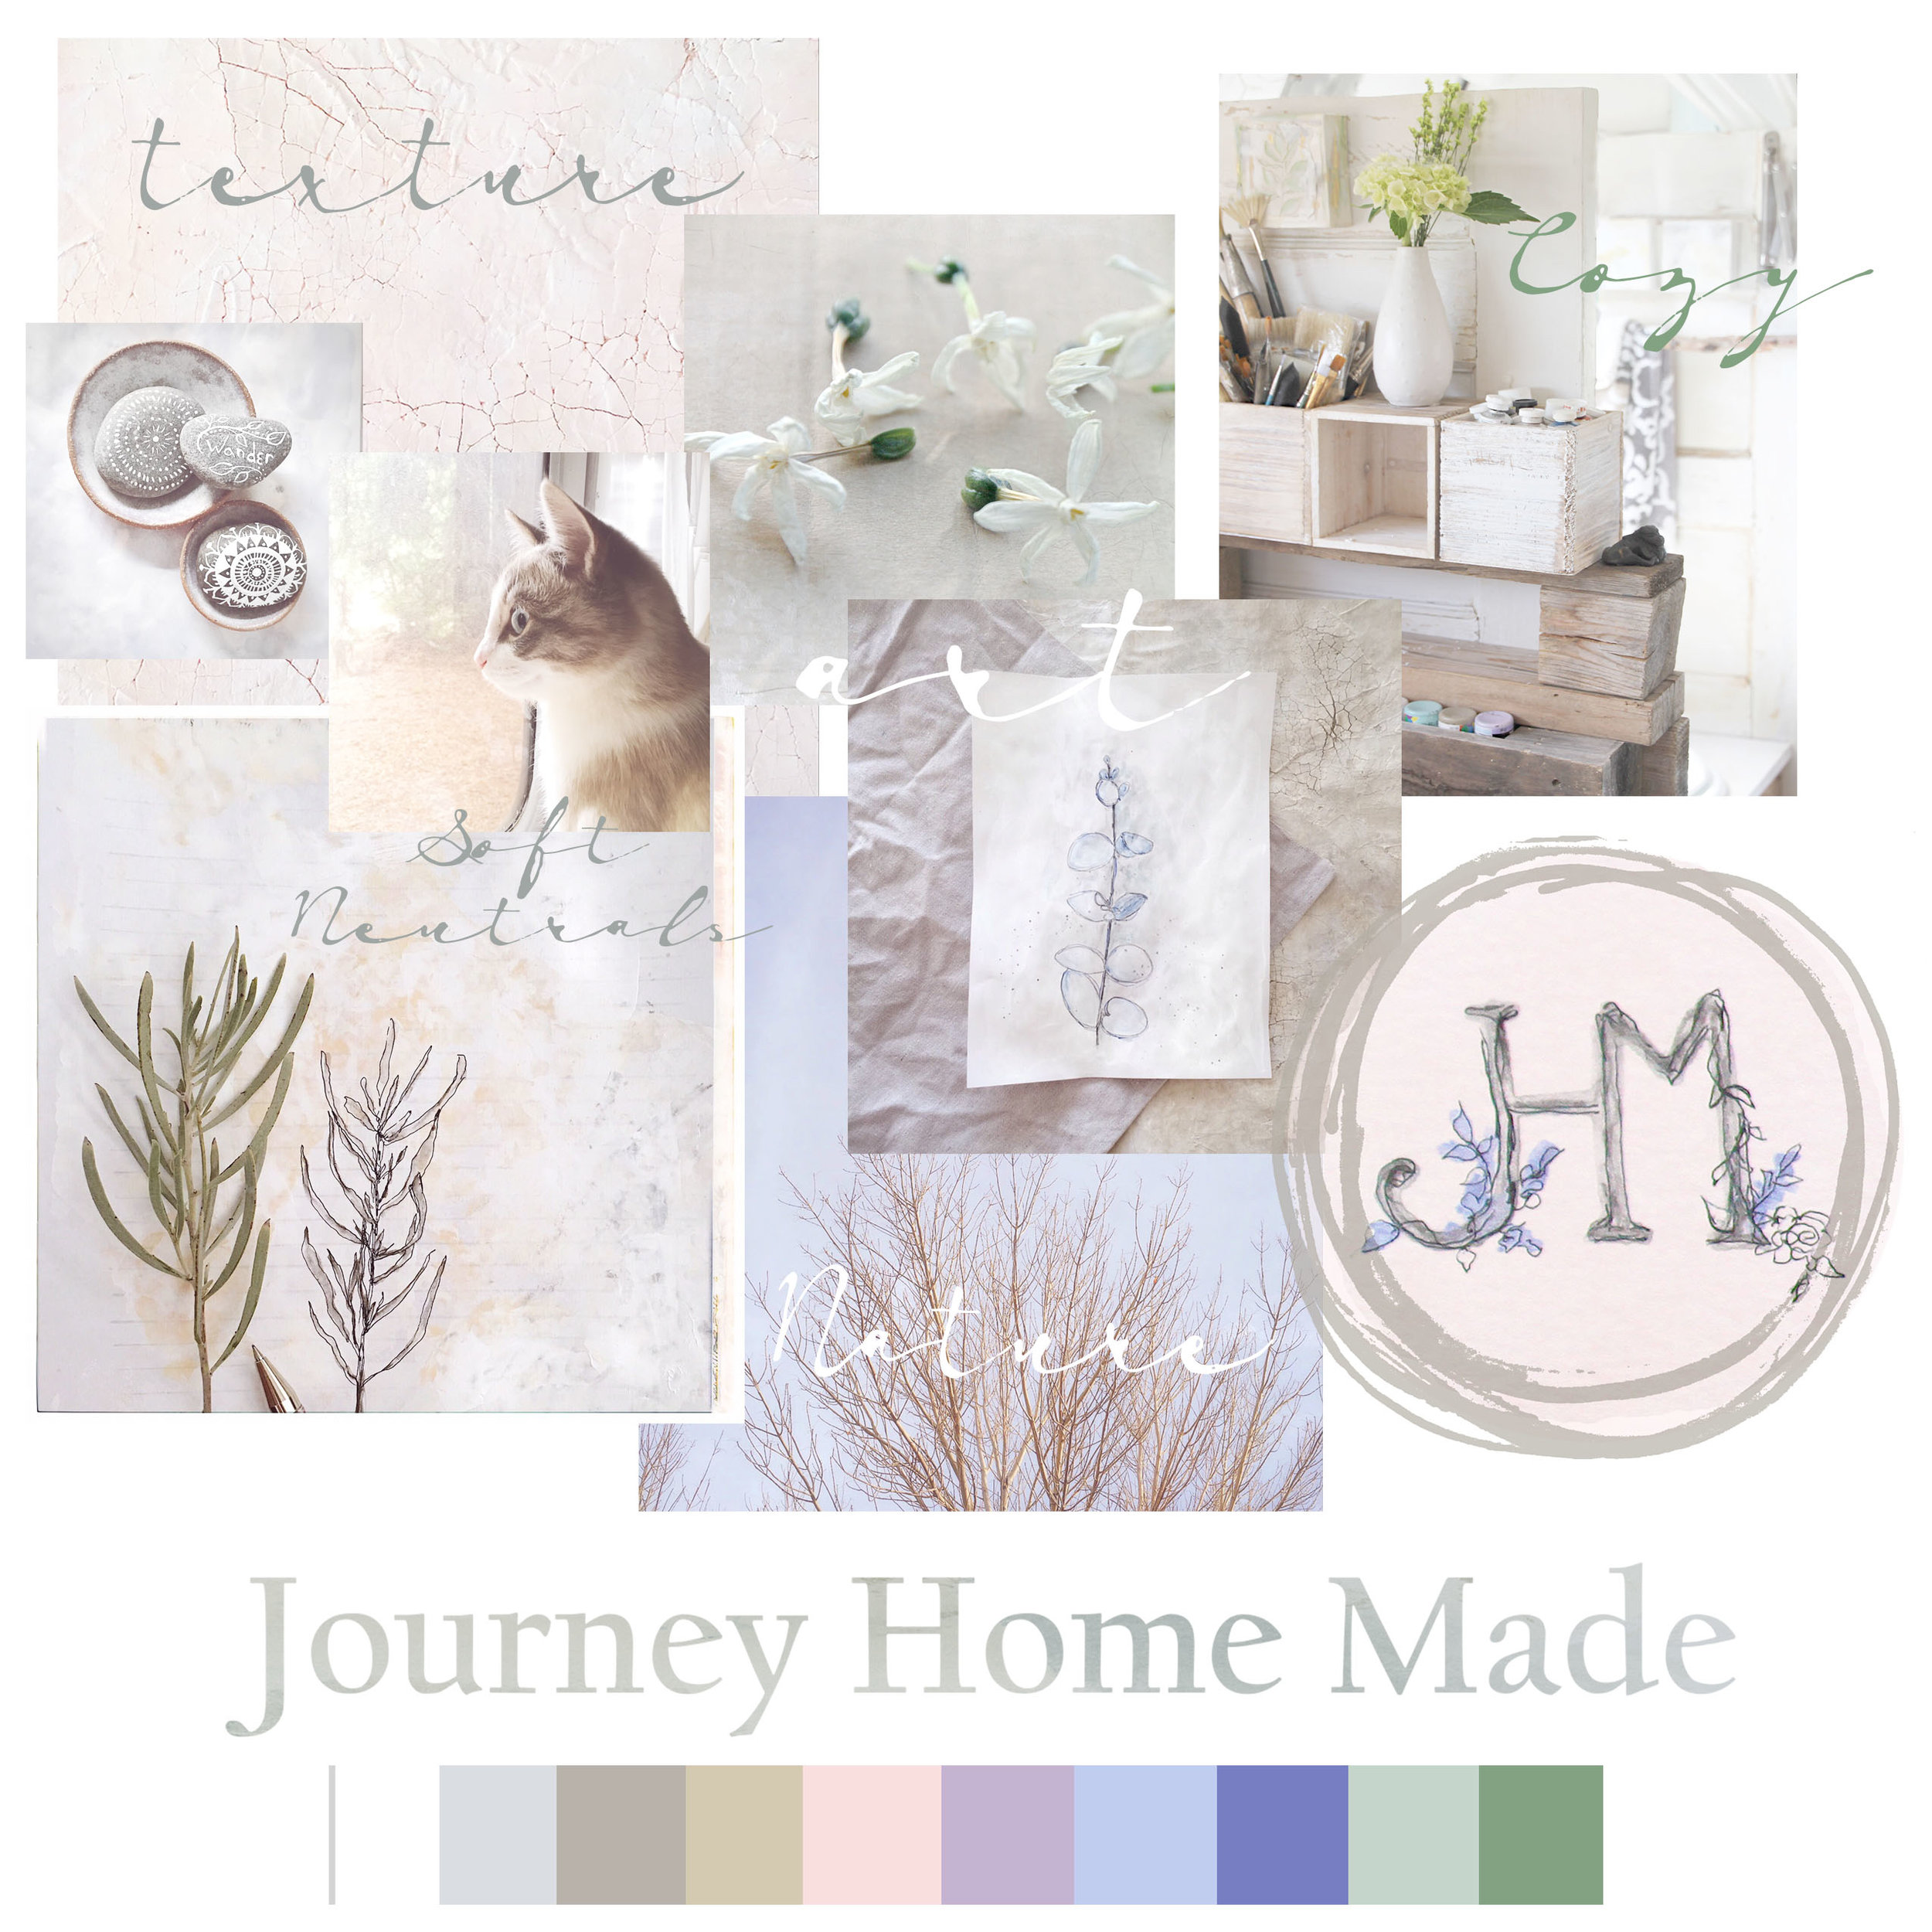 Rebranding mood board for Journey Home Made. Branding by the seasons - Summer Style. Soft, ethereal, homey, and artistic. Hygge style